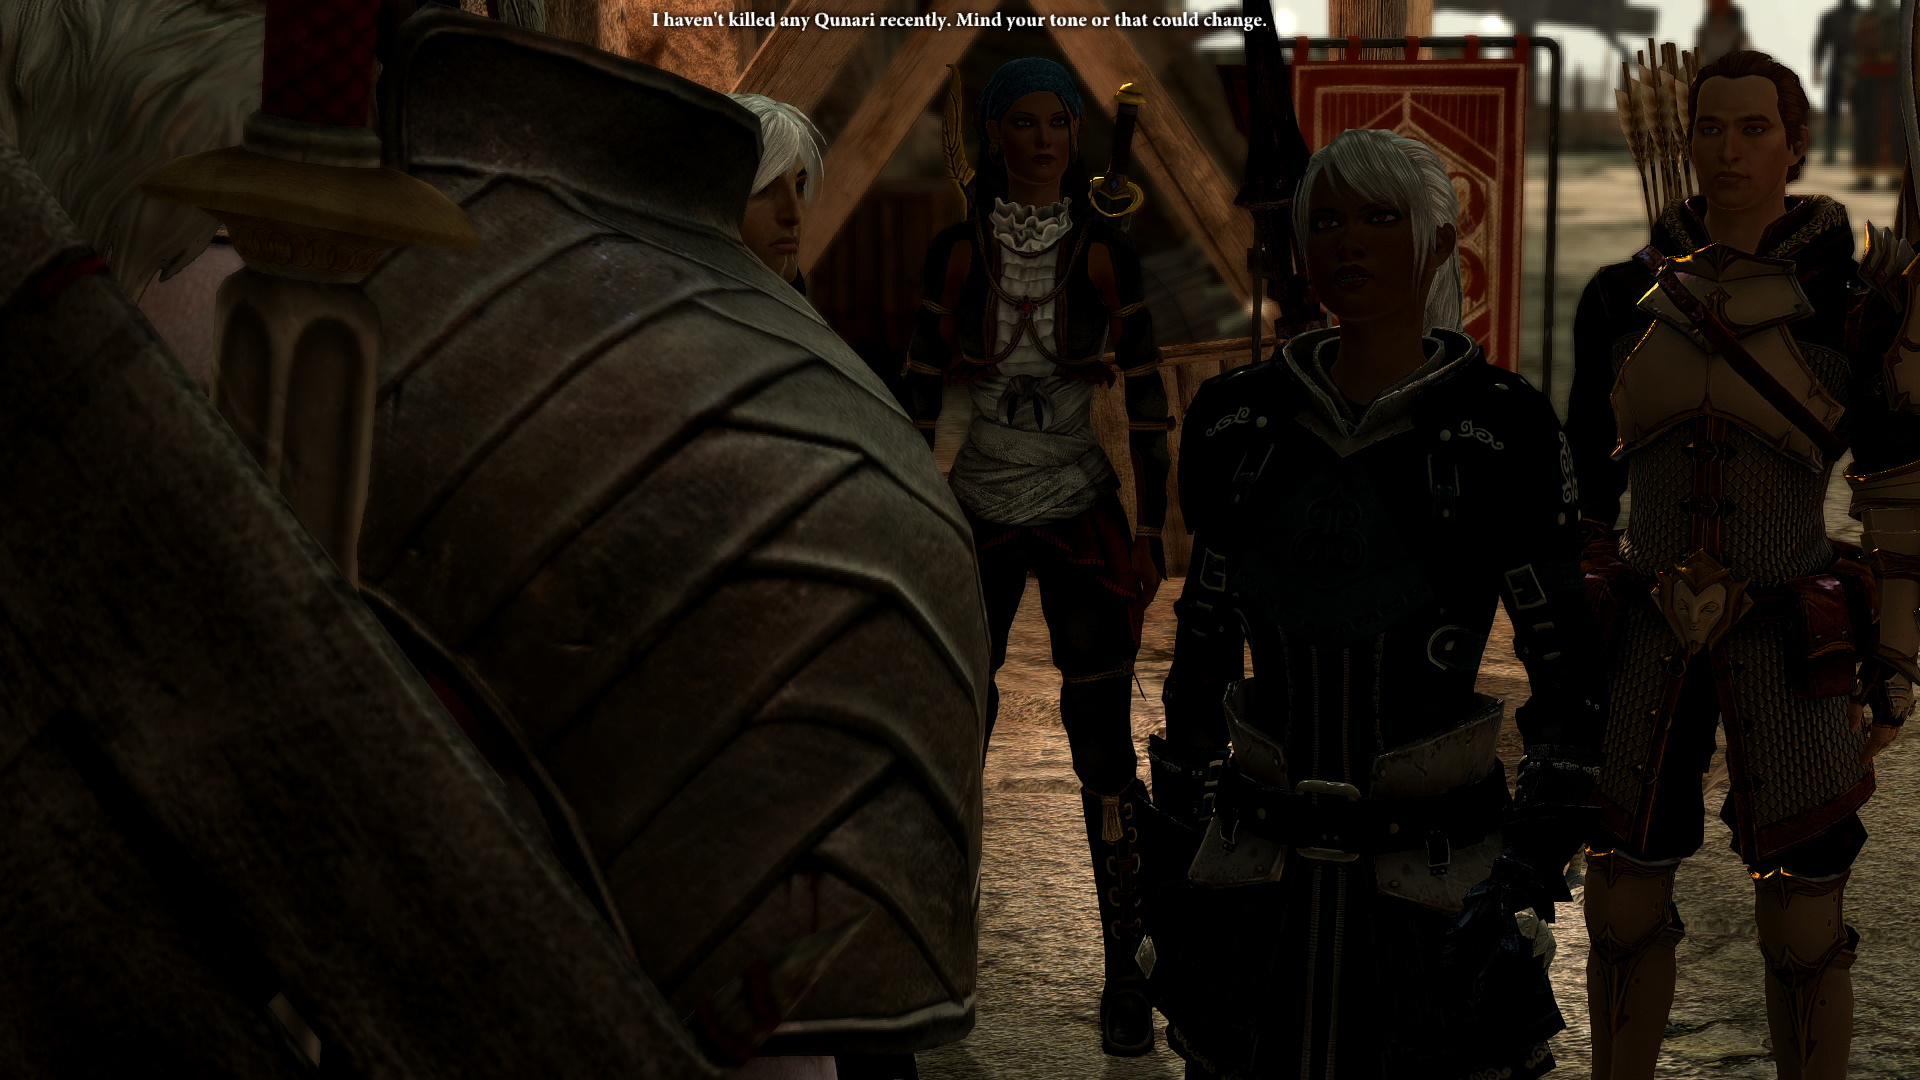 Cassia is loosing her patience with the Qunari threat